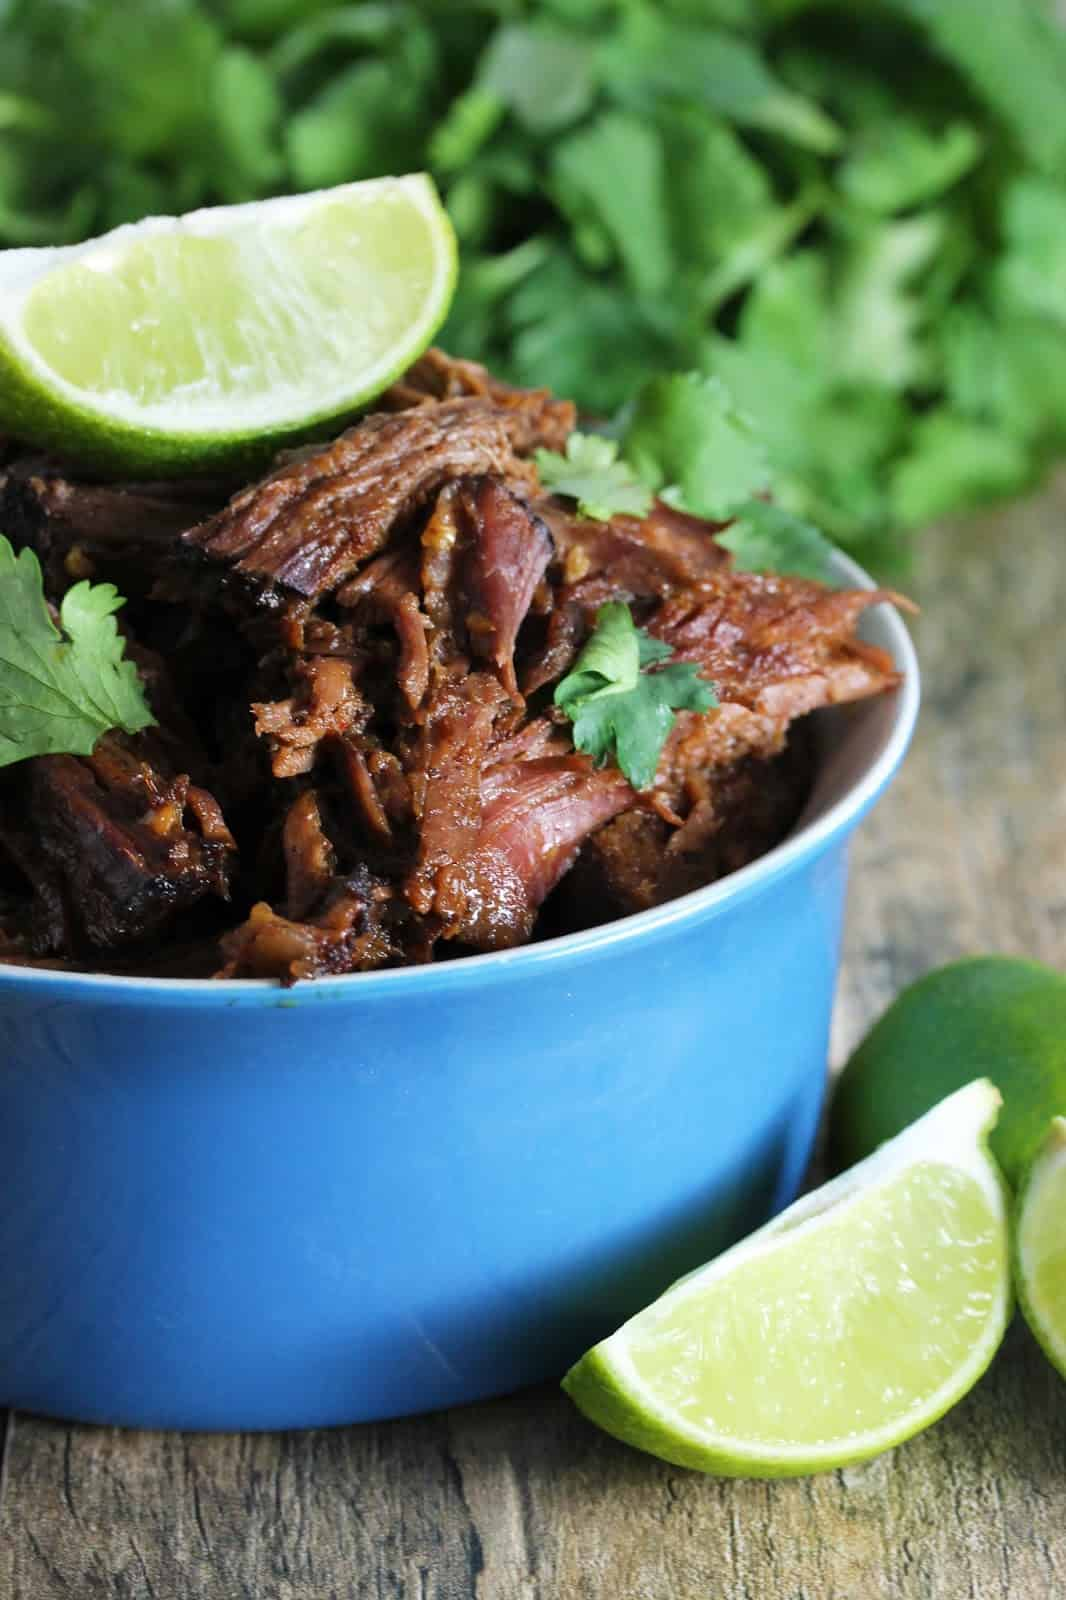 Easy Slow Cooker Chili-Lime Mexican Shredded Beef in a Crockpot, garnished with cilantro and fresh lime wedges